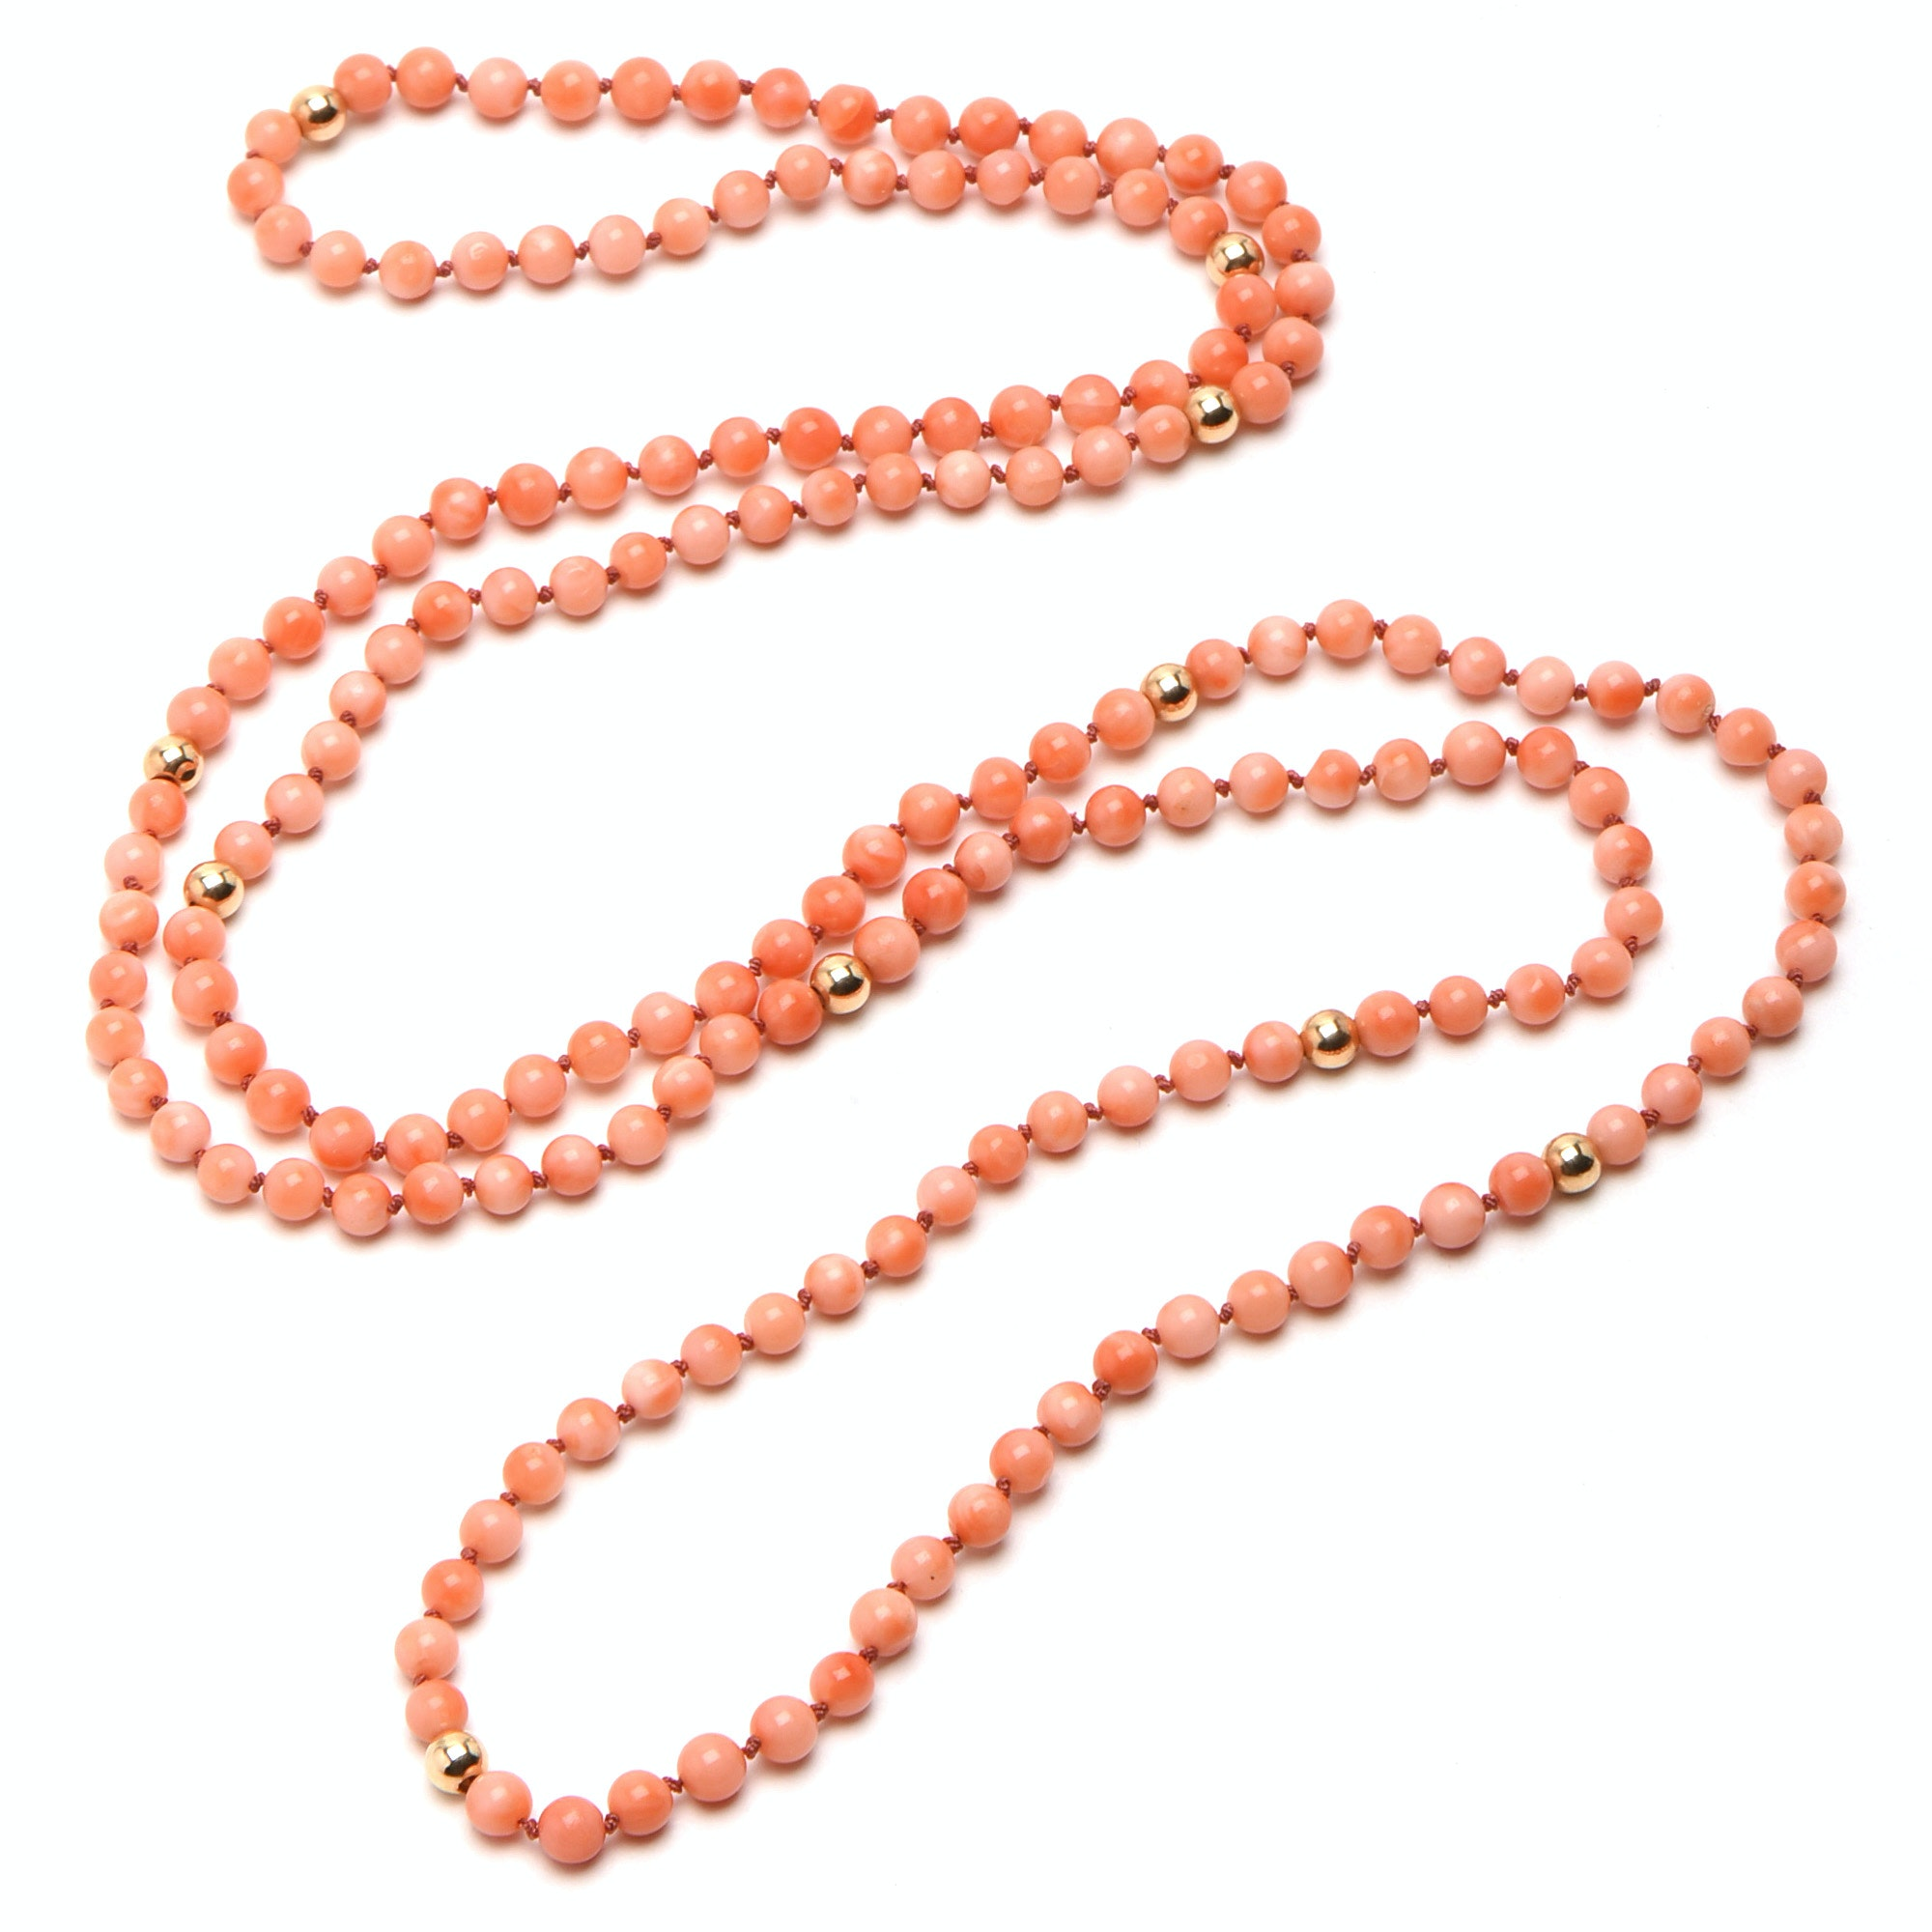 14K Yellow Gold and Coral Beaded Necklace